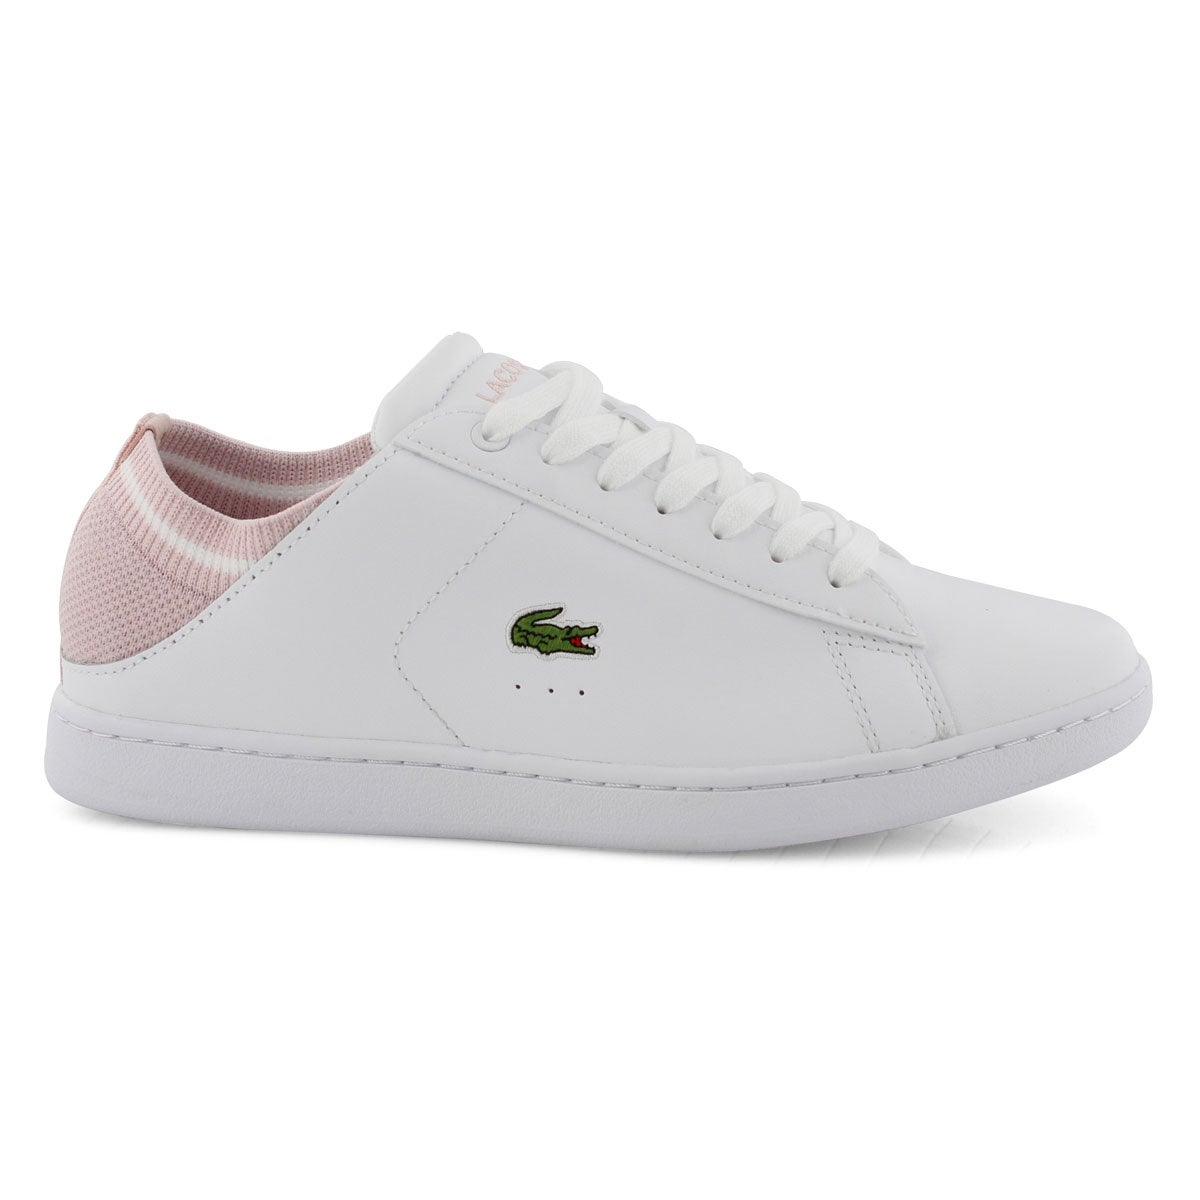 Lds Carnaby EVO Duo 119 1 wht/pnk snkr